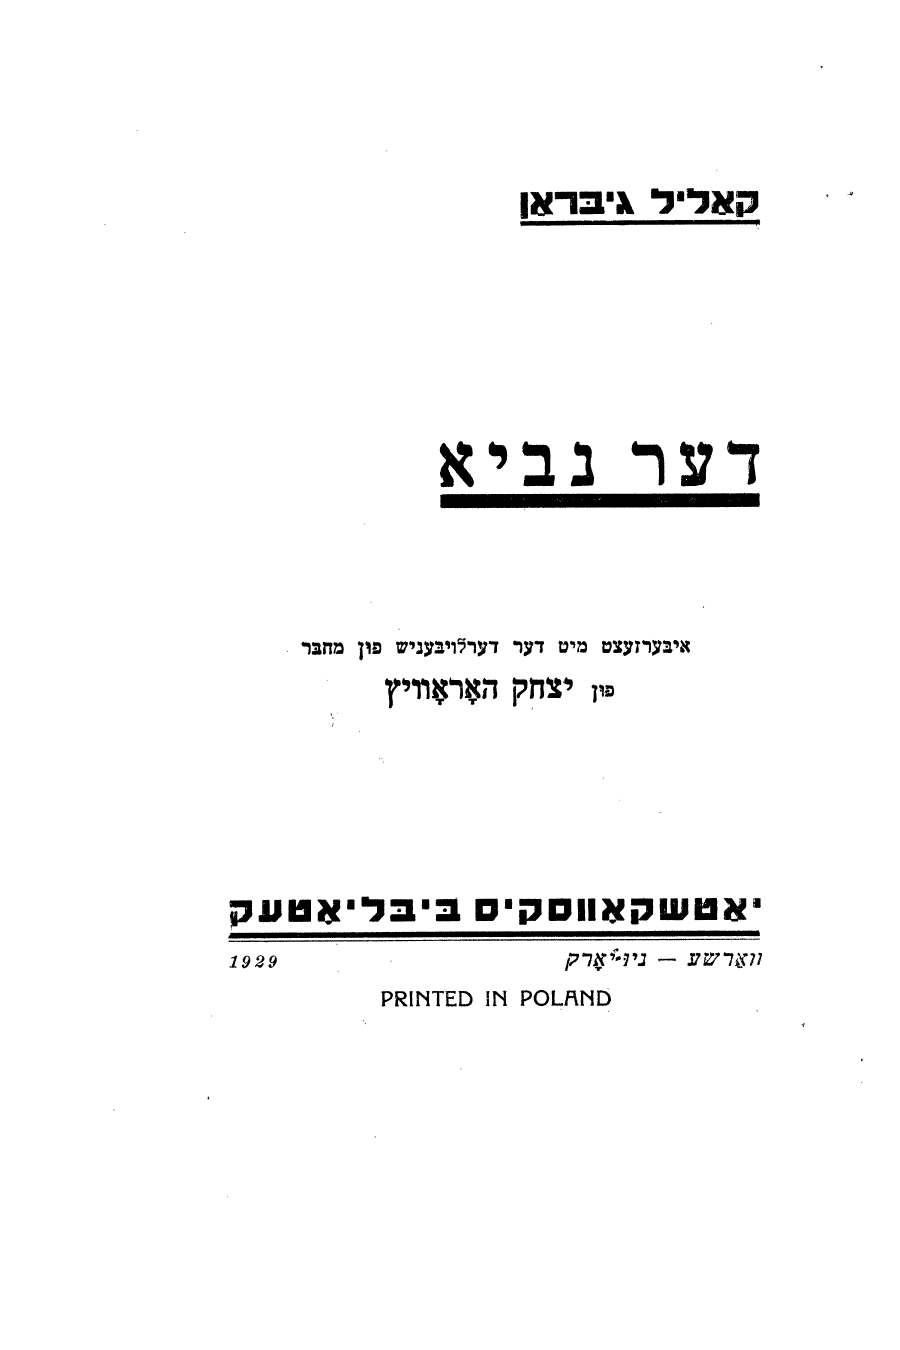 Der Novi (The Prophet), translated into Yiddish by Isaac Horowitz, Warsaw (Poland): Yatshkovski's Biblyotek, 1929.